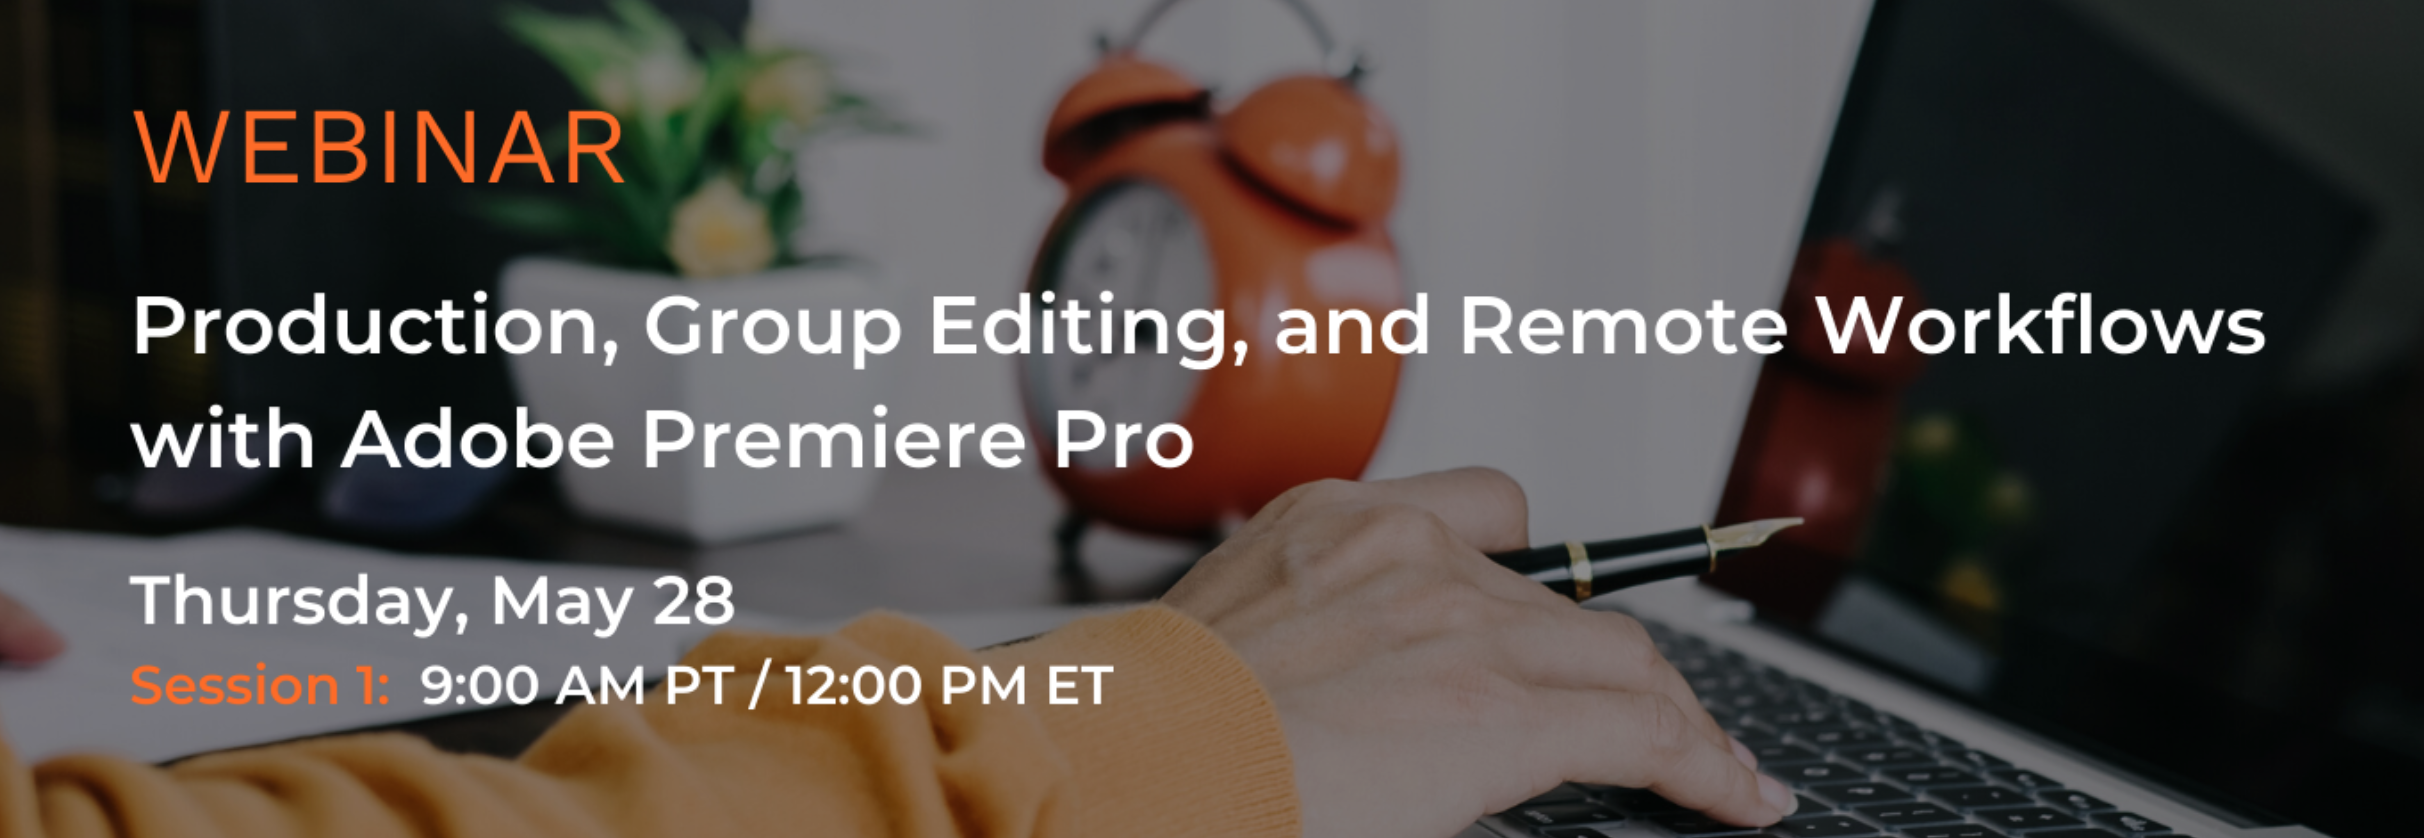 EditShare Webinar: Production, Group Editing, and Remote Workflows with Adobe Premiere Pro – Session 1